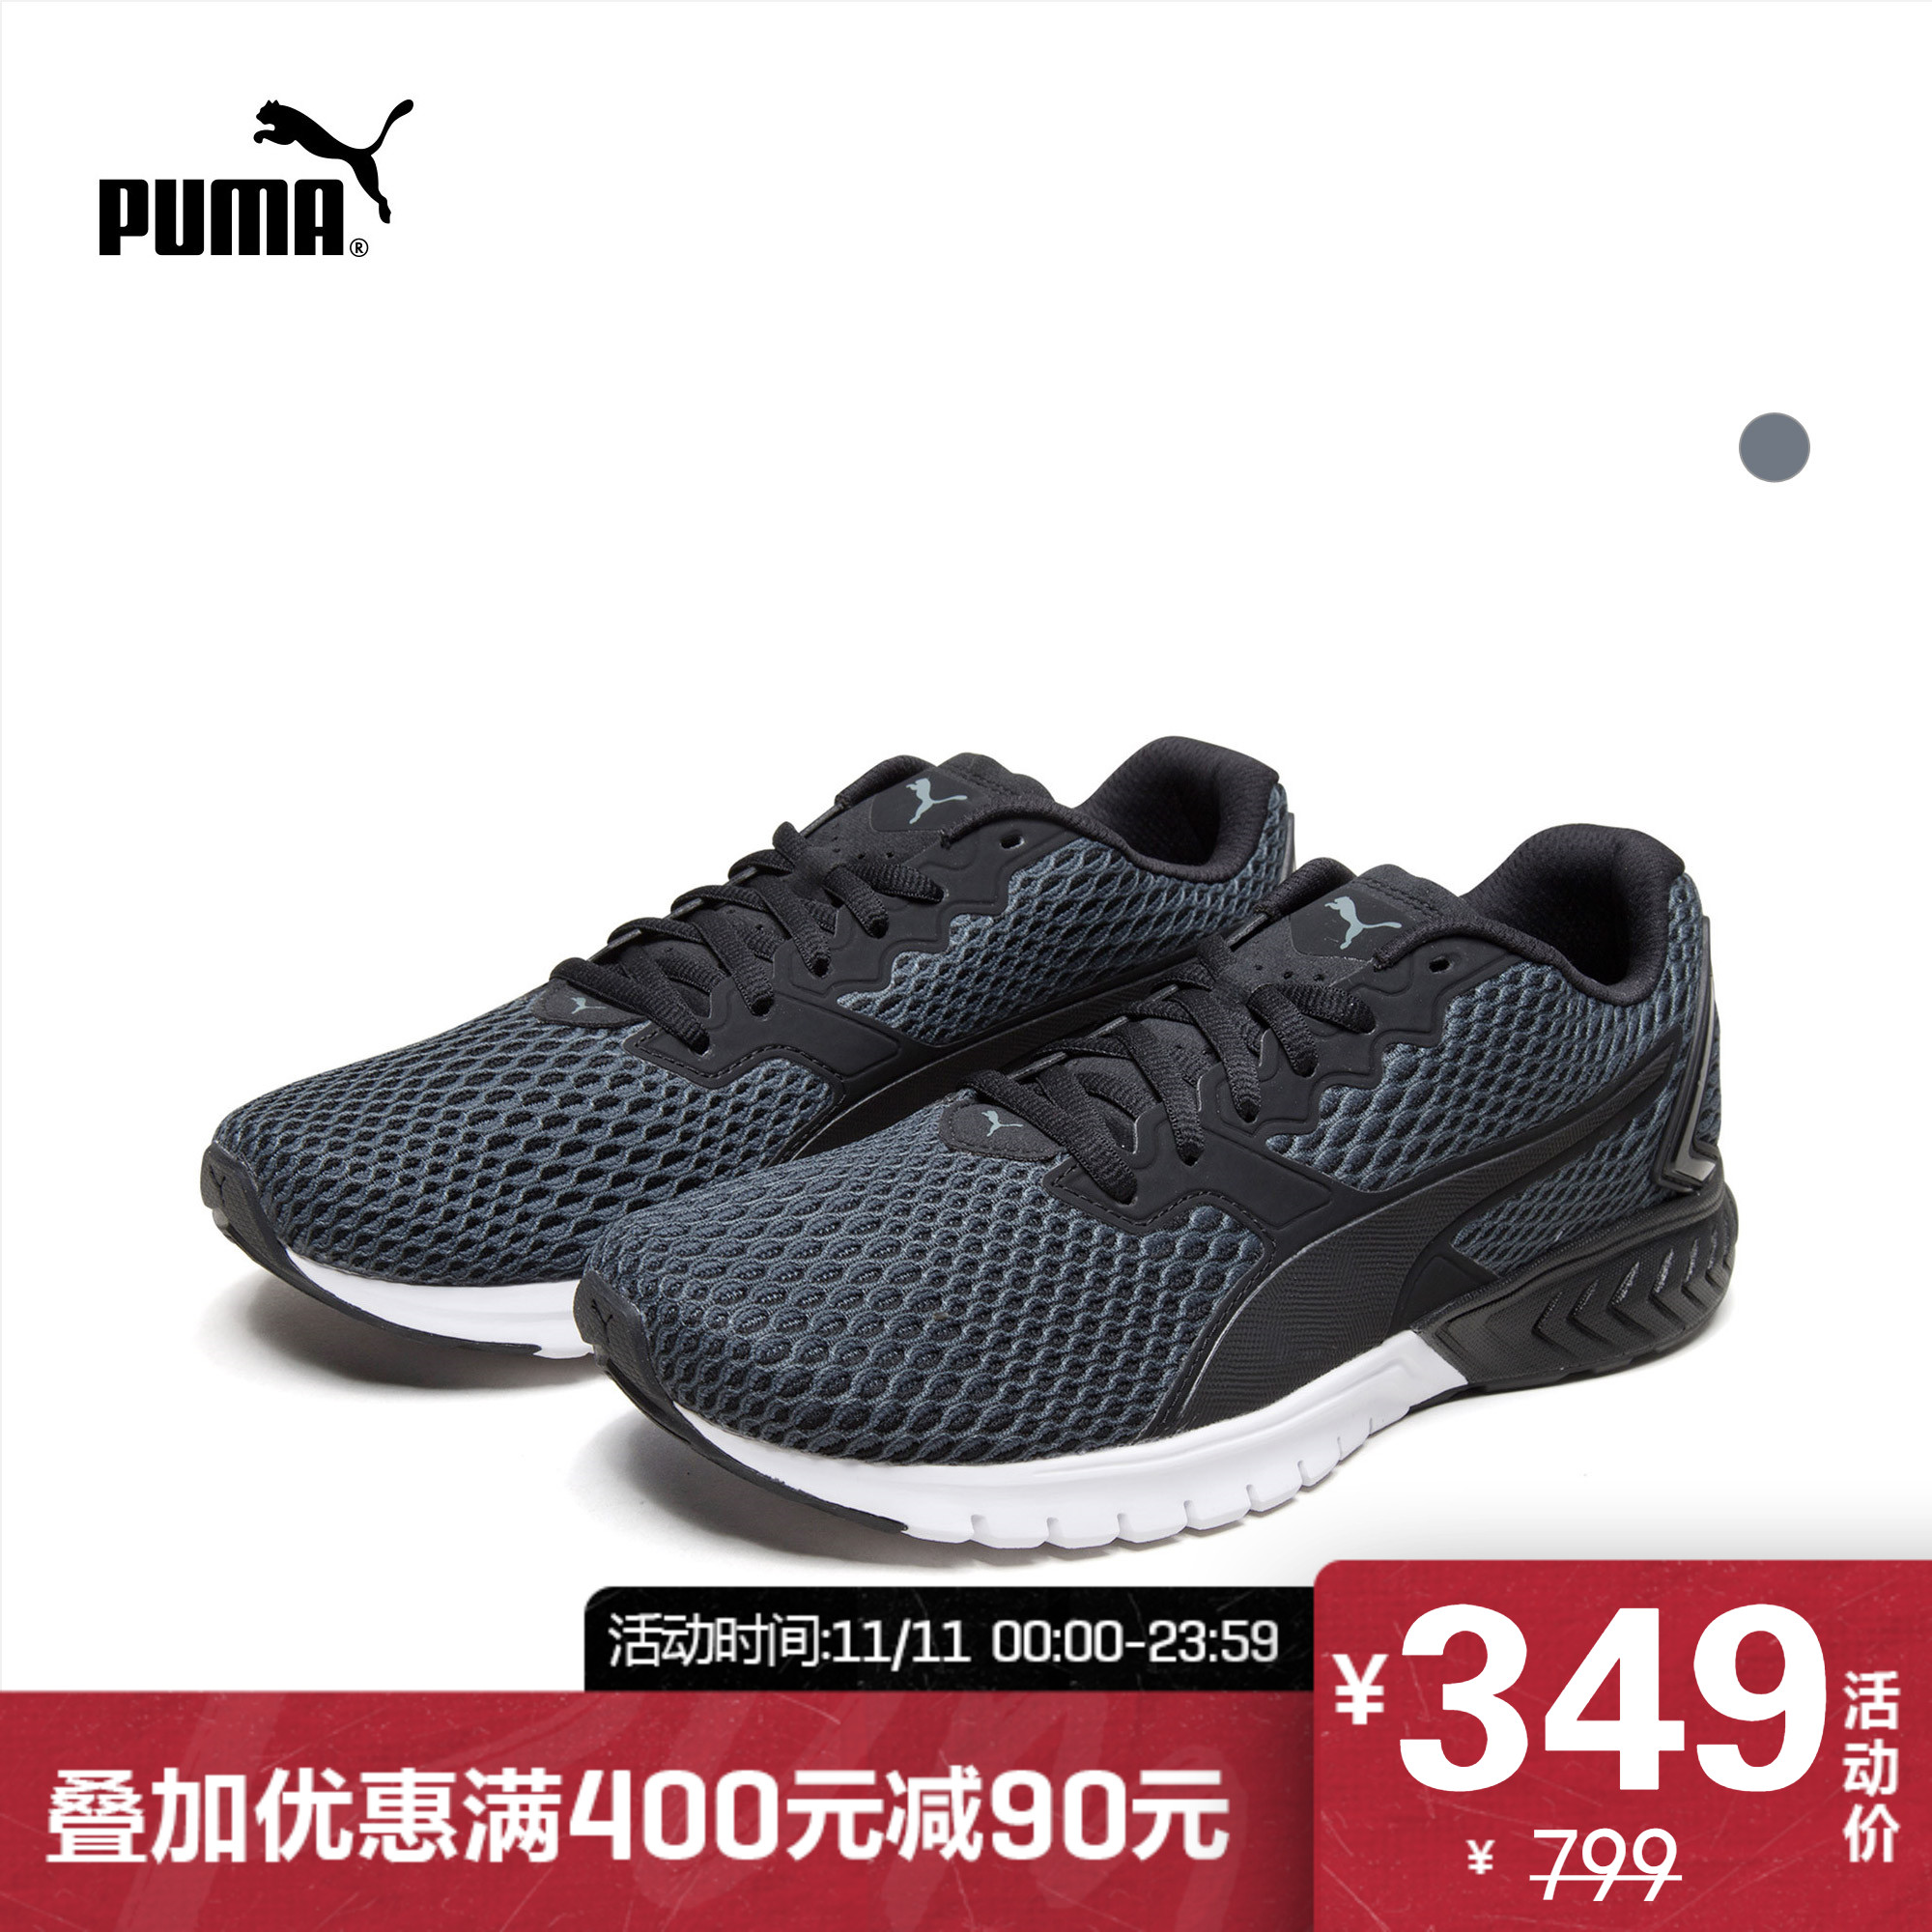 PUMA彪马官方 男子跑步鞋 IGNITE Dual New Core 190489